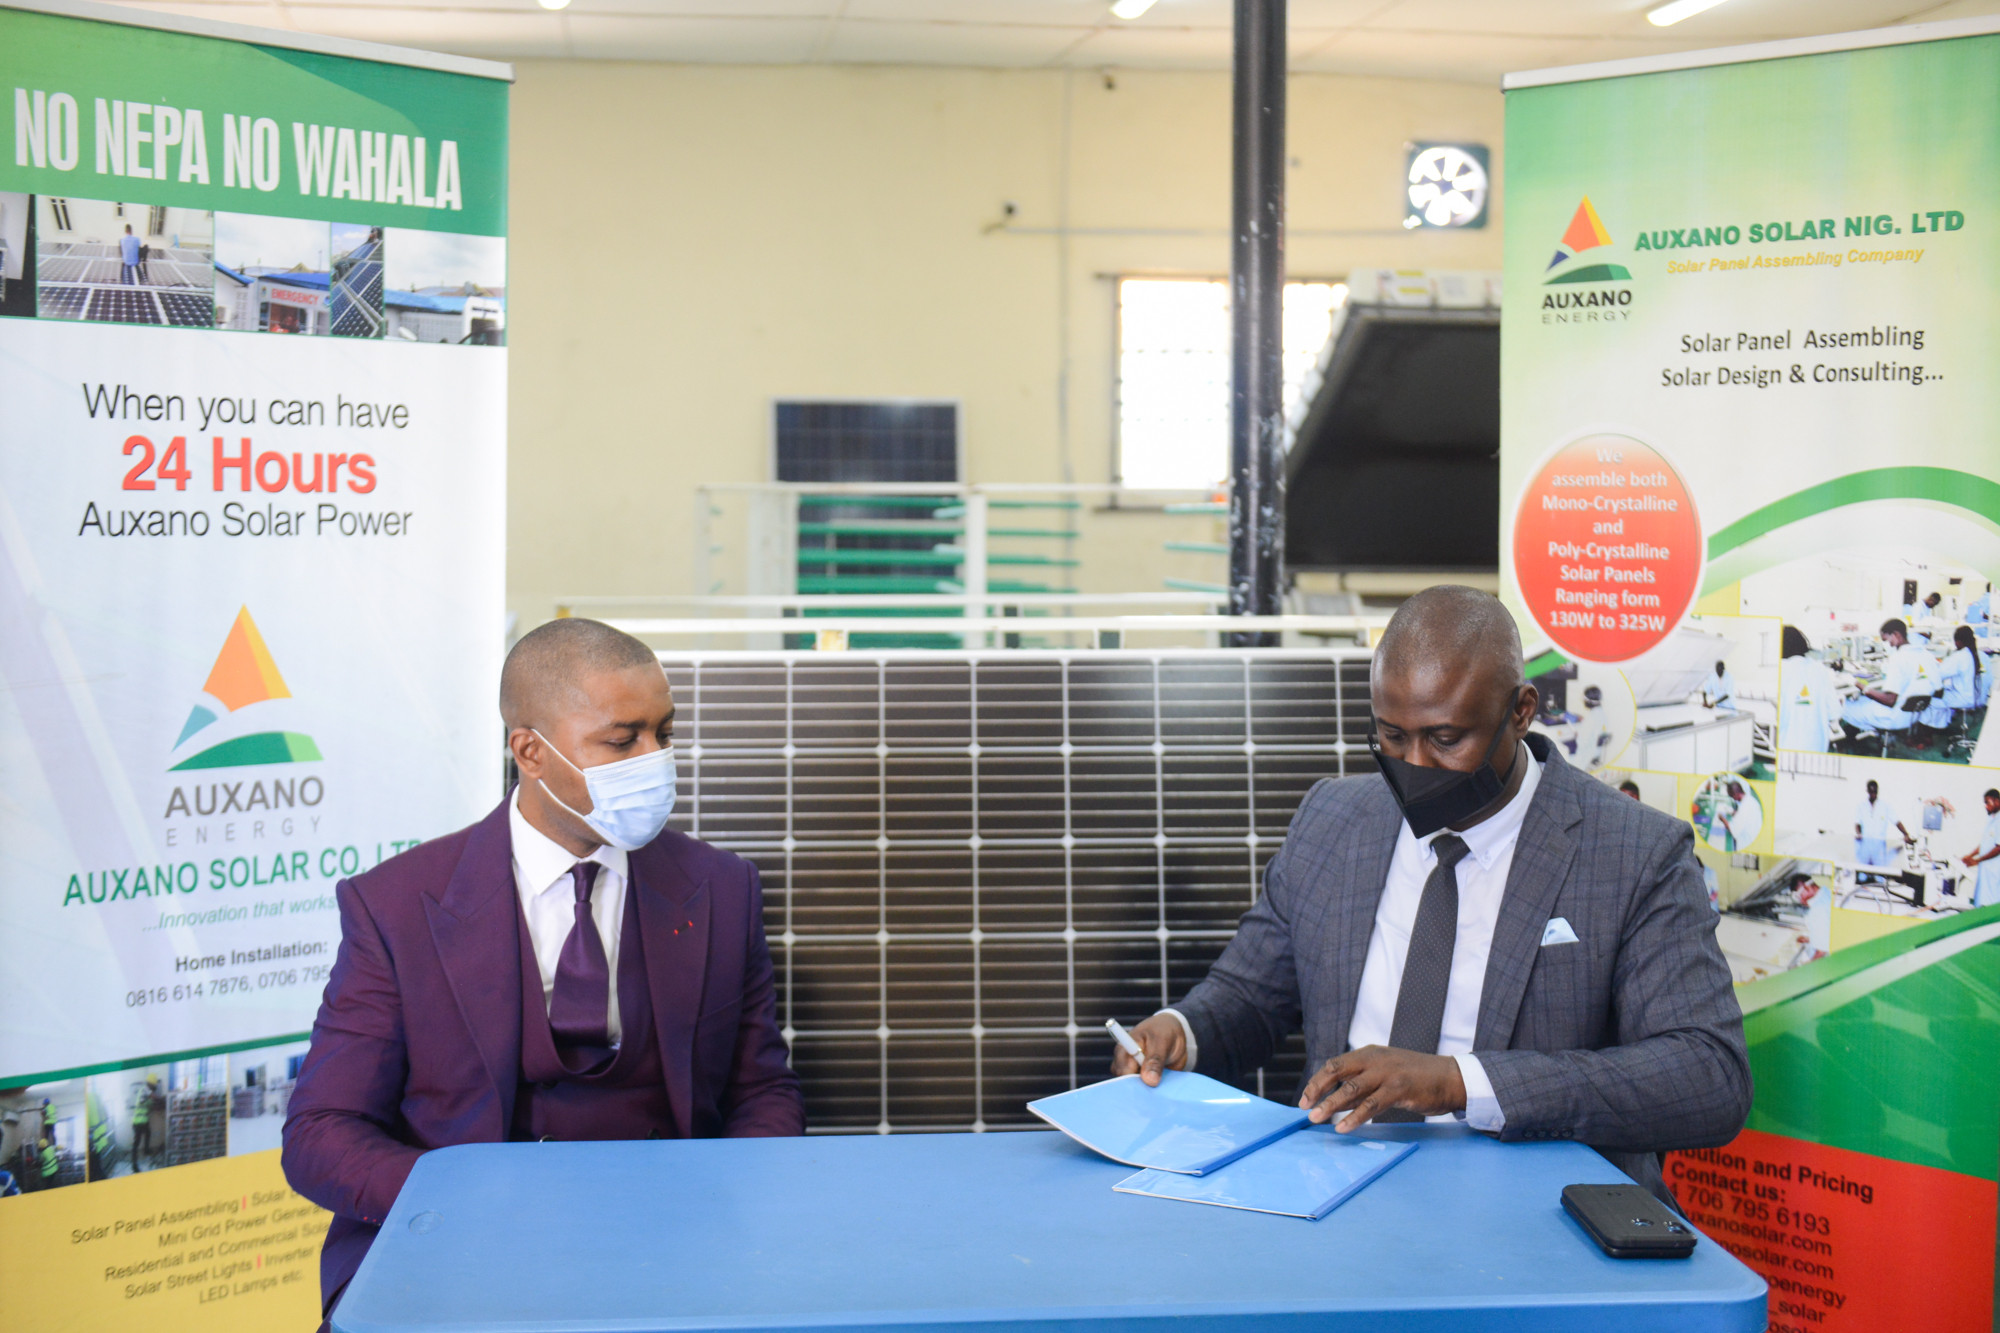 All On and Auxano Solar Nigeria Sign $1.5m Investment Deal for Solar Panel Assembly Plant Expansion lindaikejisblog3